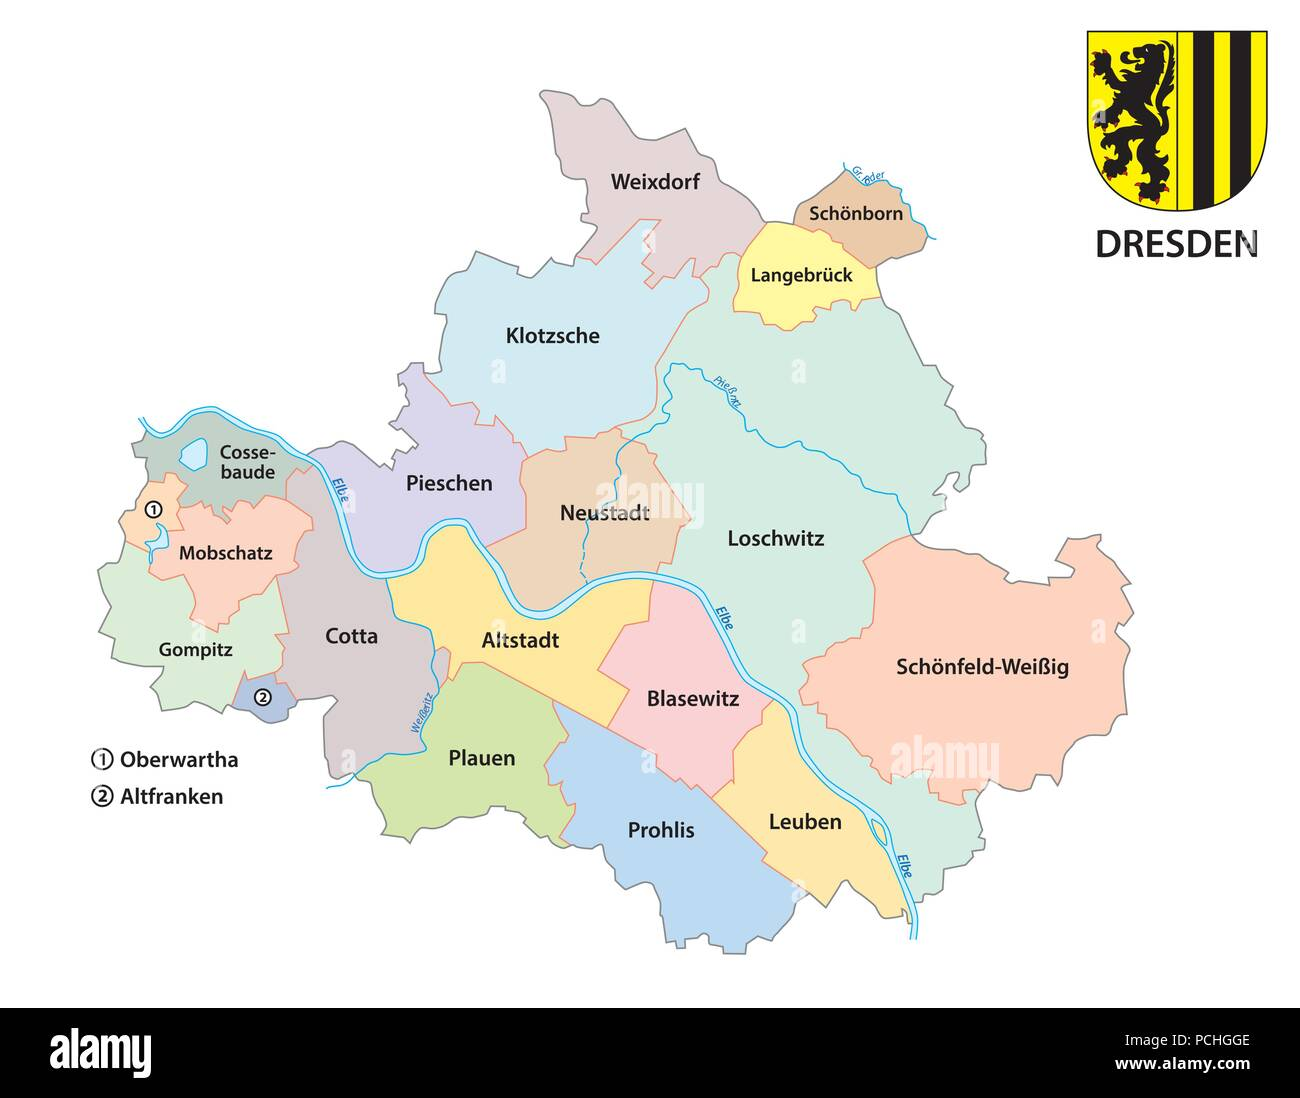 Dresden, administrative and political map of the Saxon capita with coat of armsl. - Stock Vector